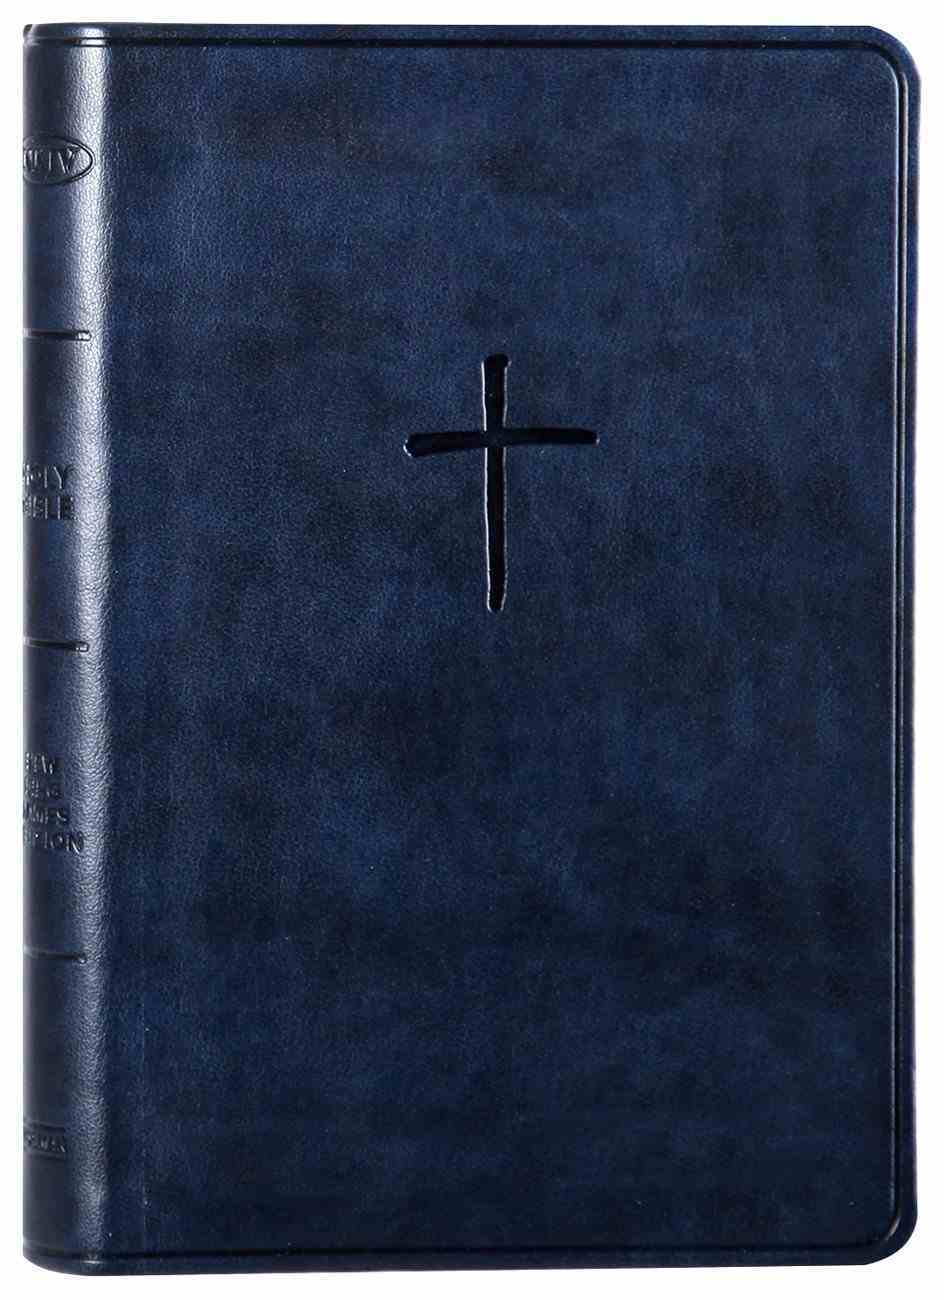 NKJV Compact Bible Navy (Red Letter Edition) Imitation Leather